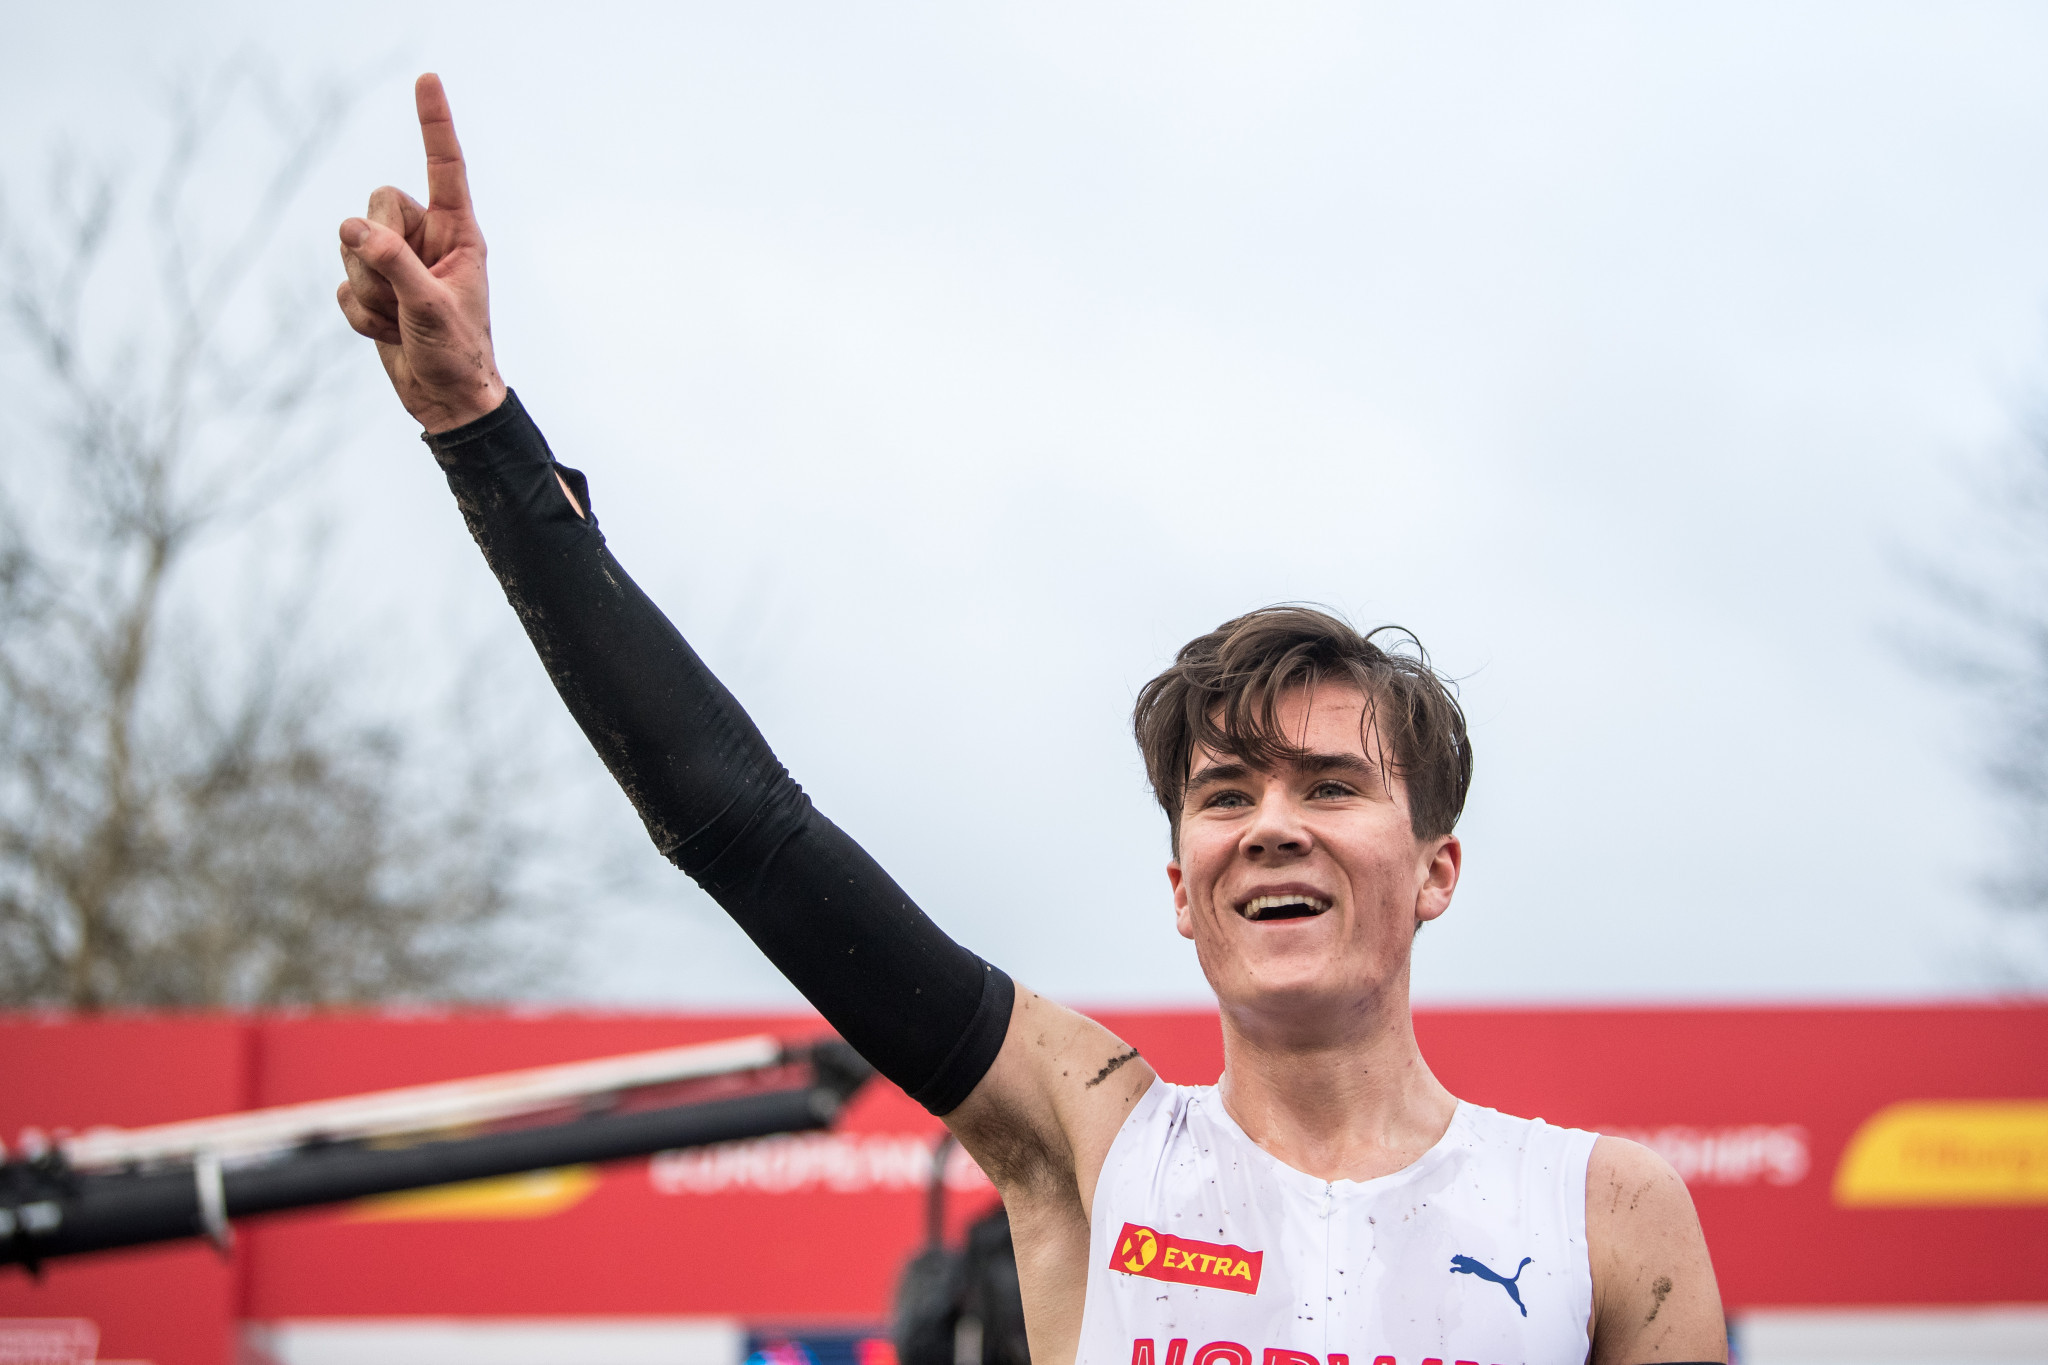 Filip and Jakob Ingebrigtsen to defend senior and under-20 titles at European Cross Country Championships